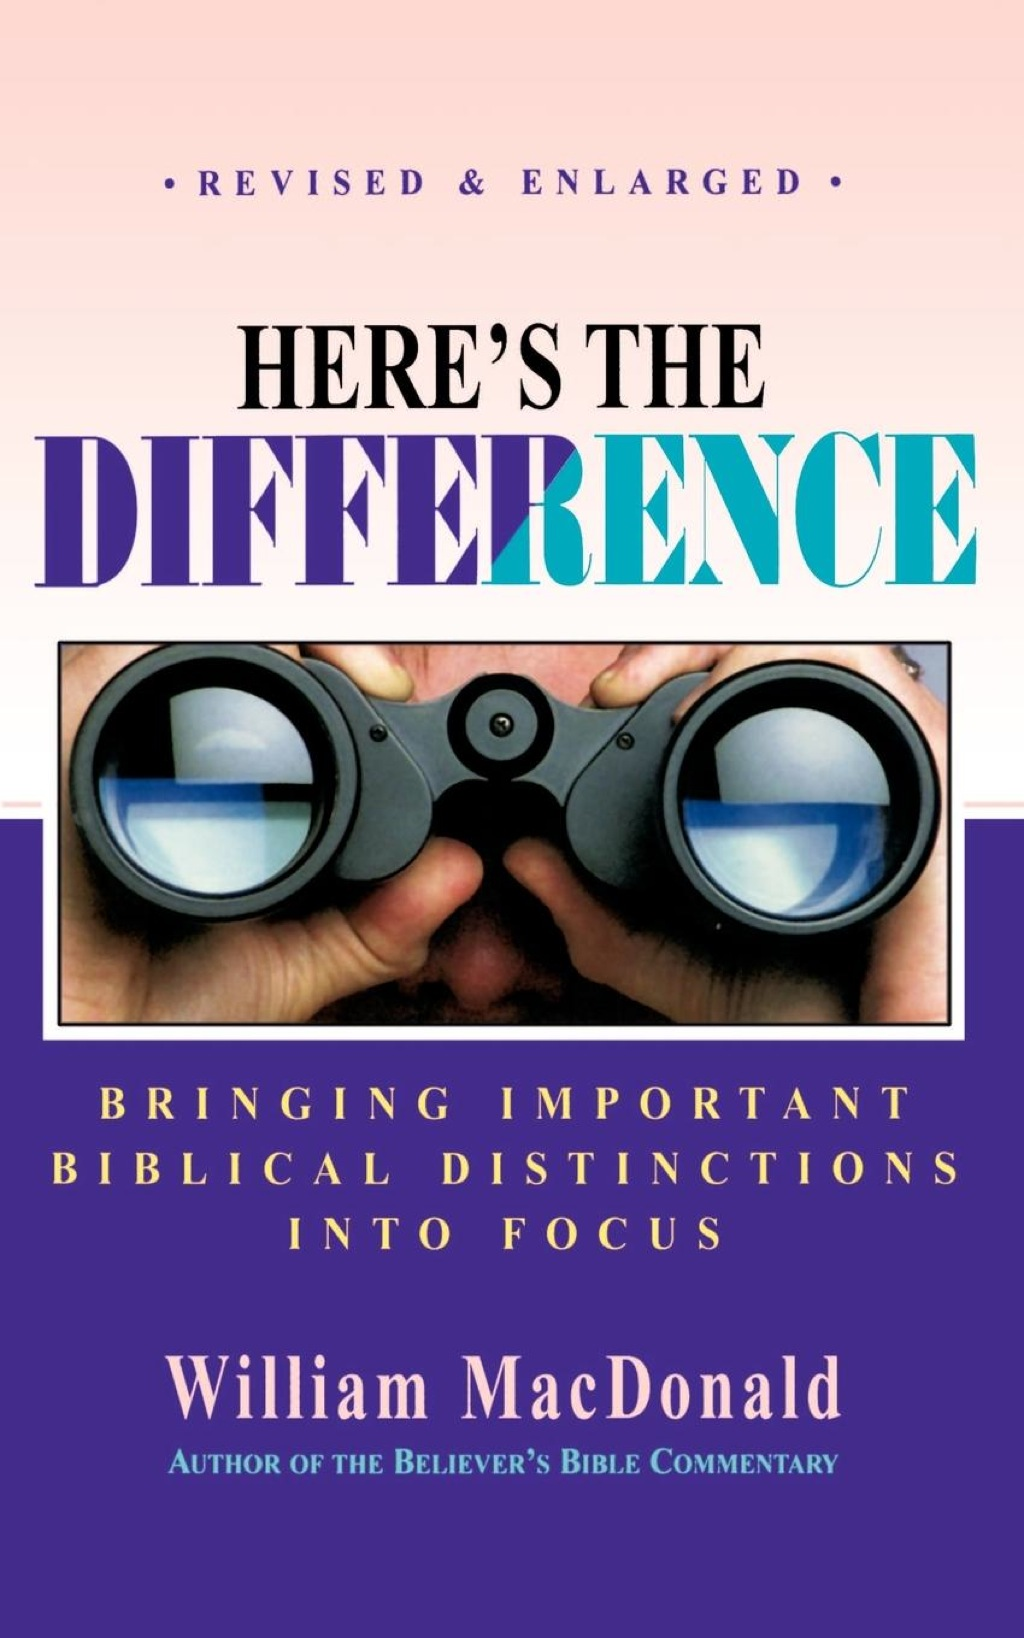 Heres the Difference (eBook)